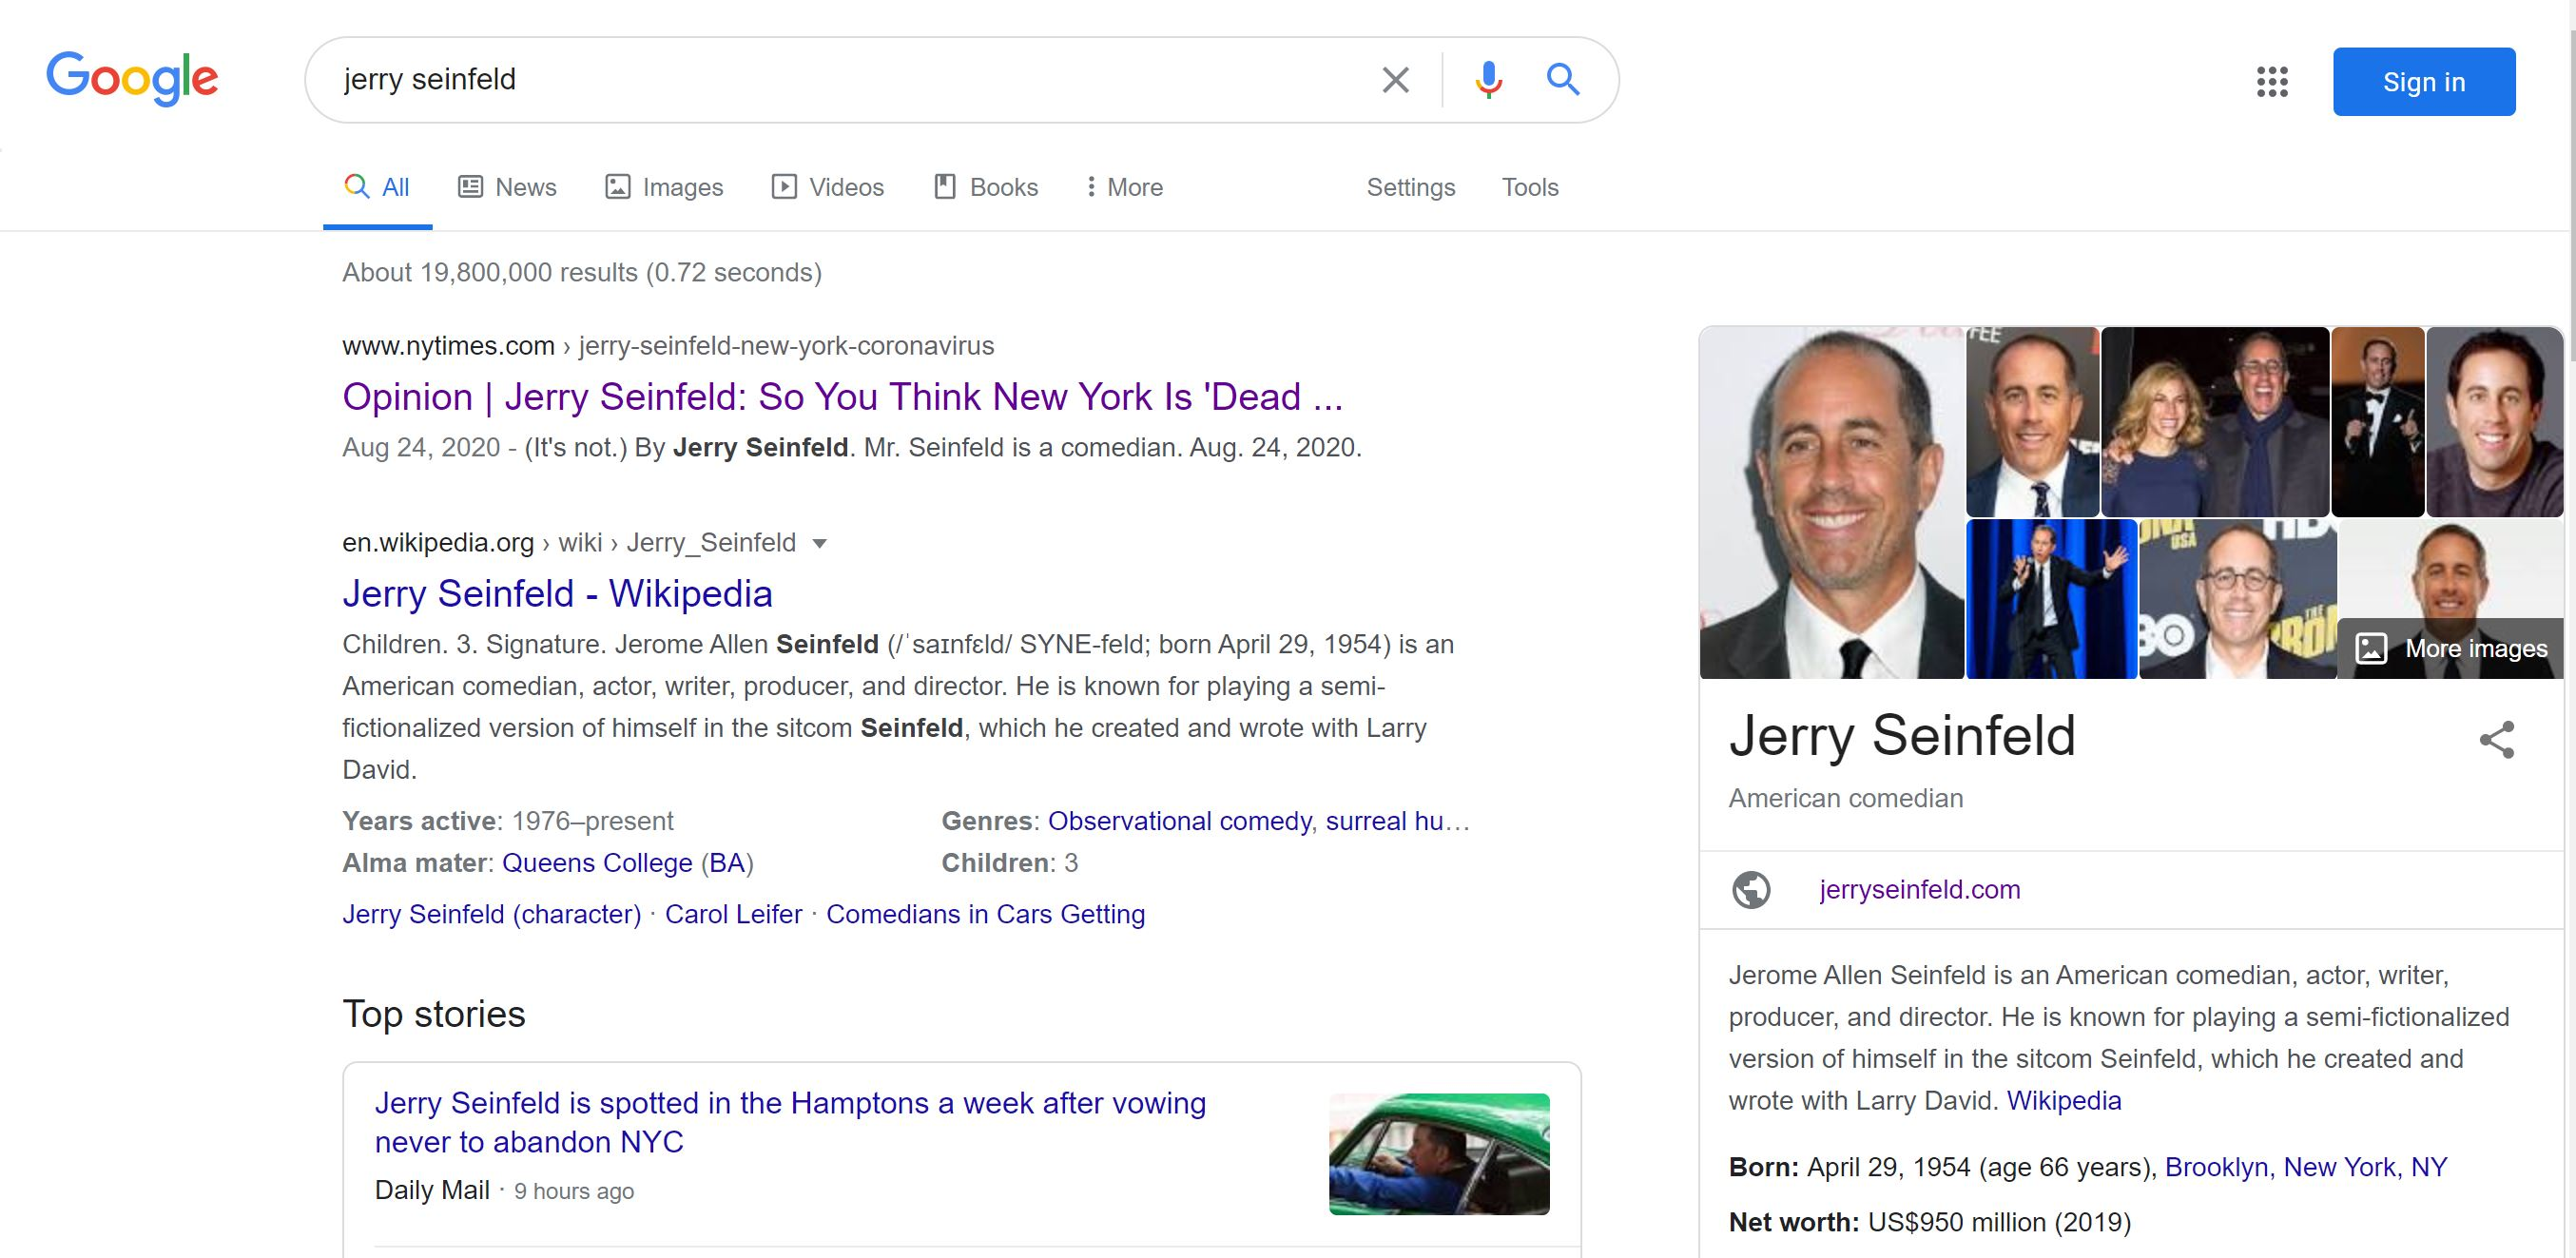 Google search results for Jerry Seinfeld